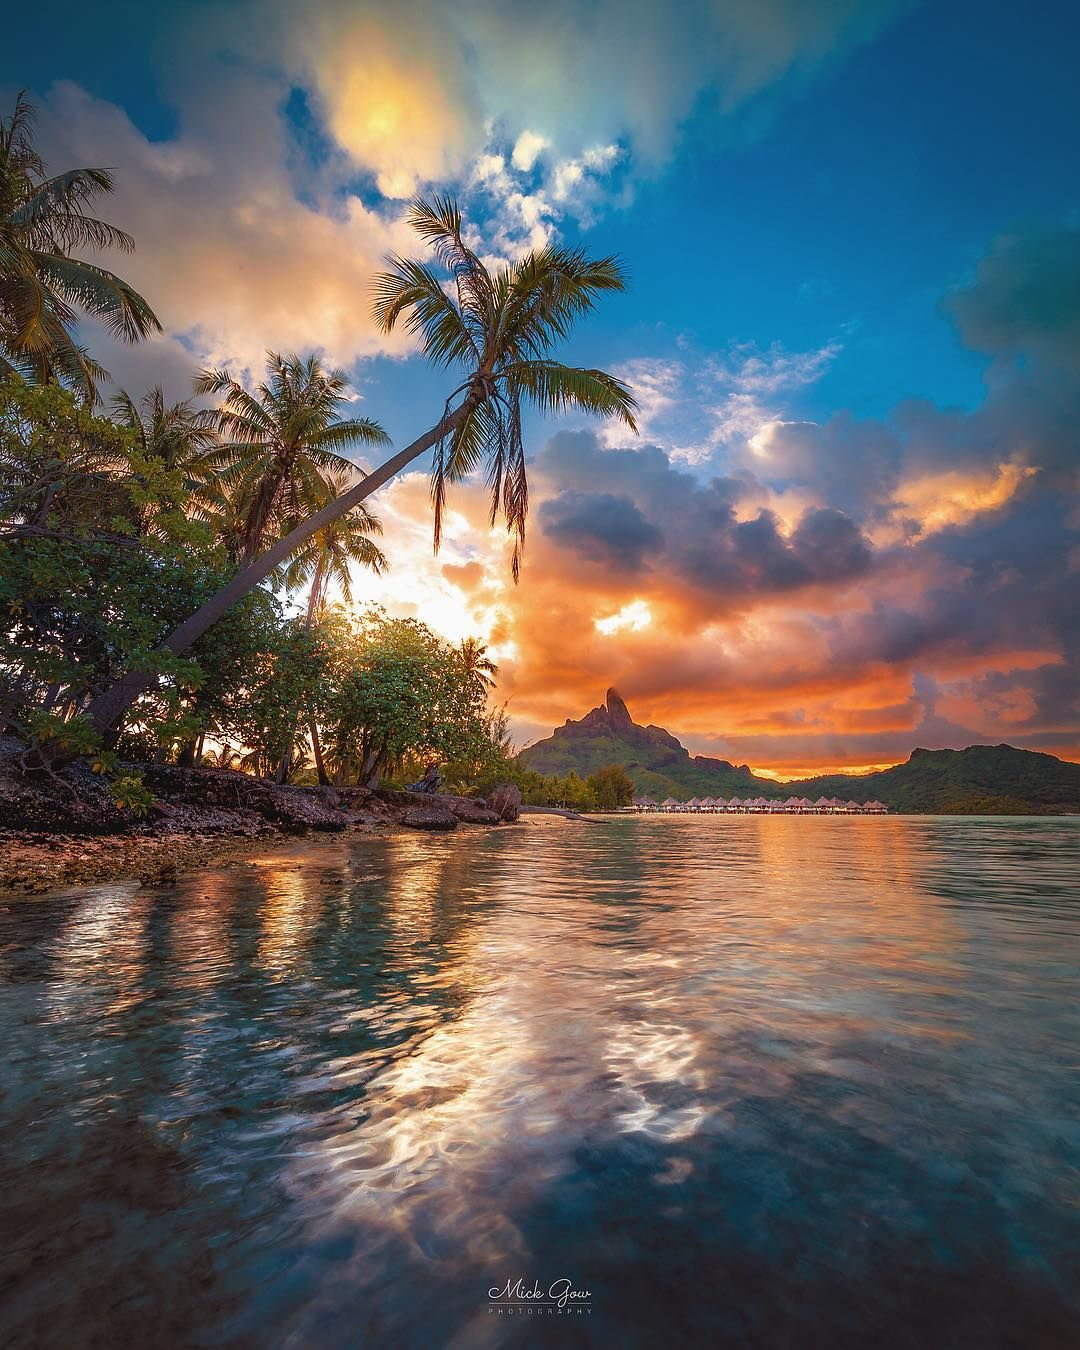 South Pacific Beaches: Mesmerizing Landscapes Of Bora Bora By Mick Gow